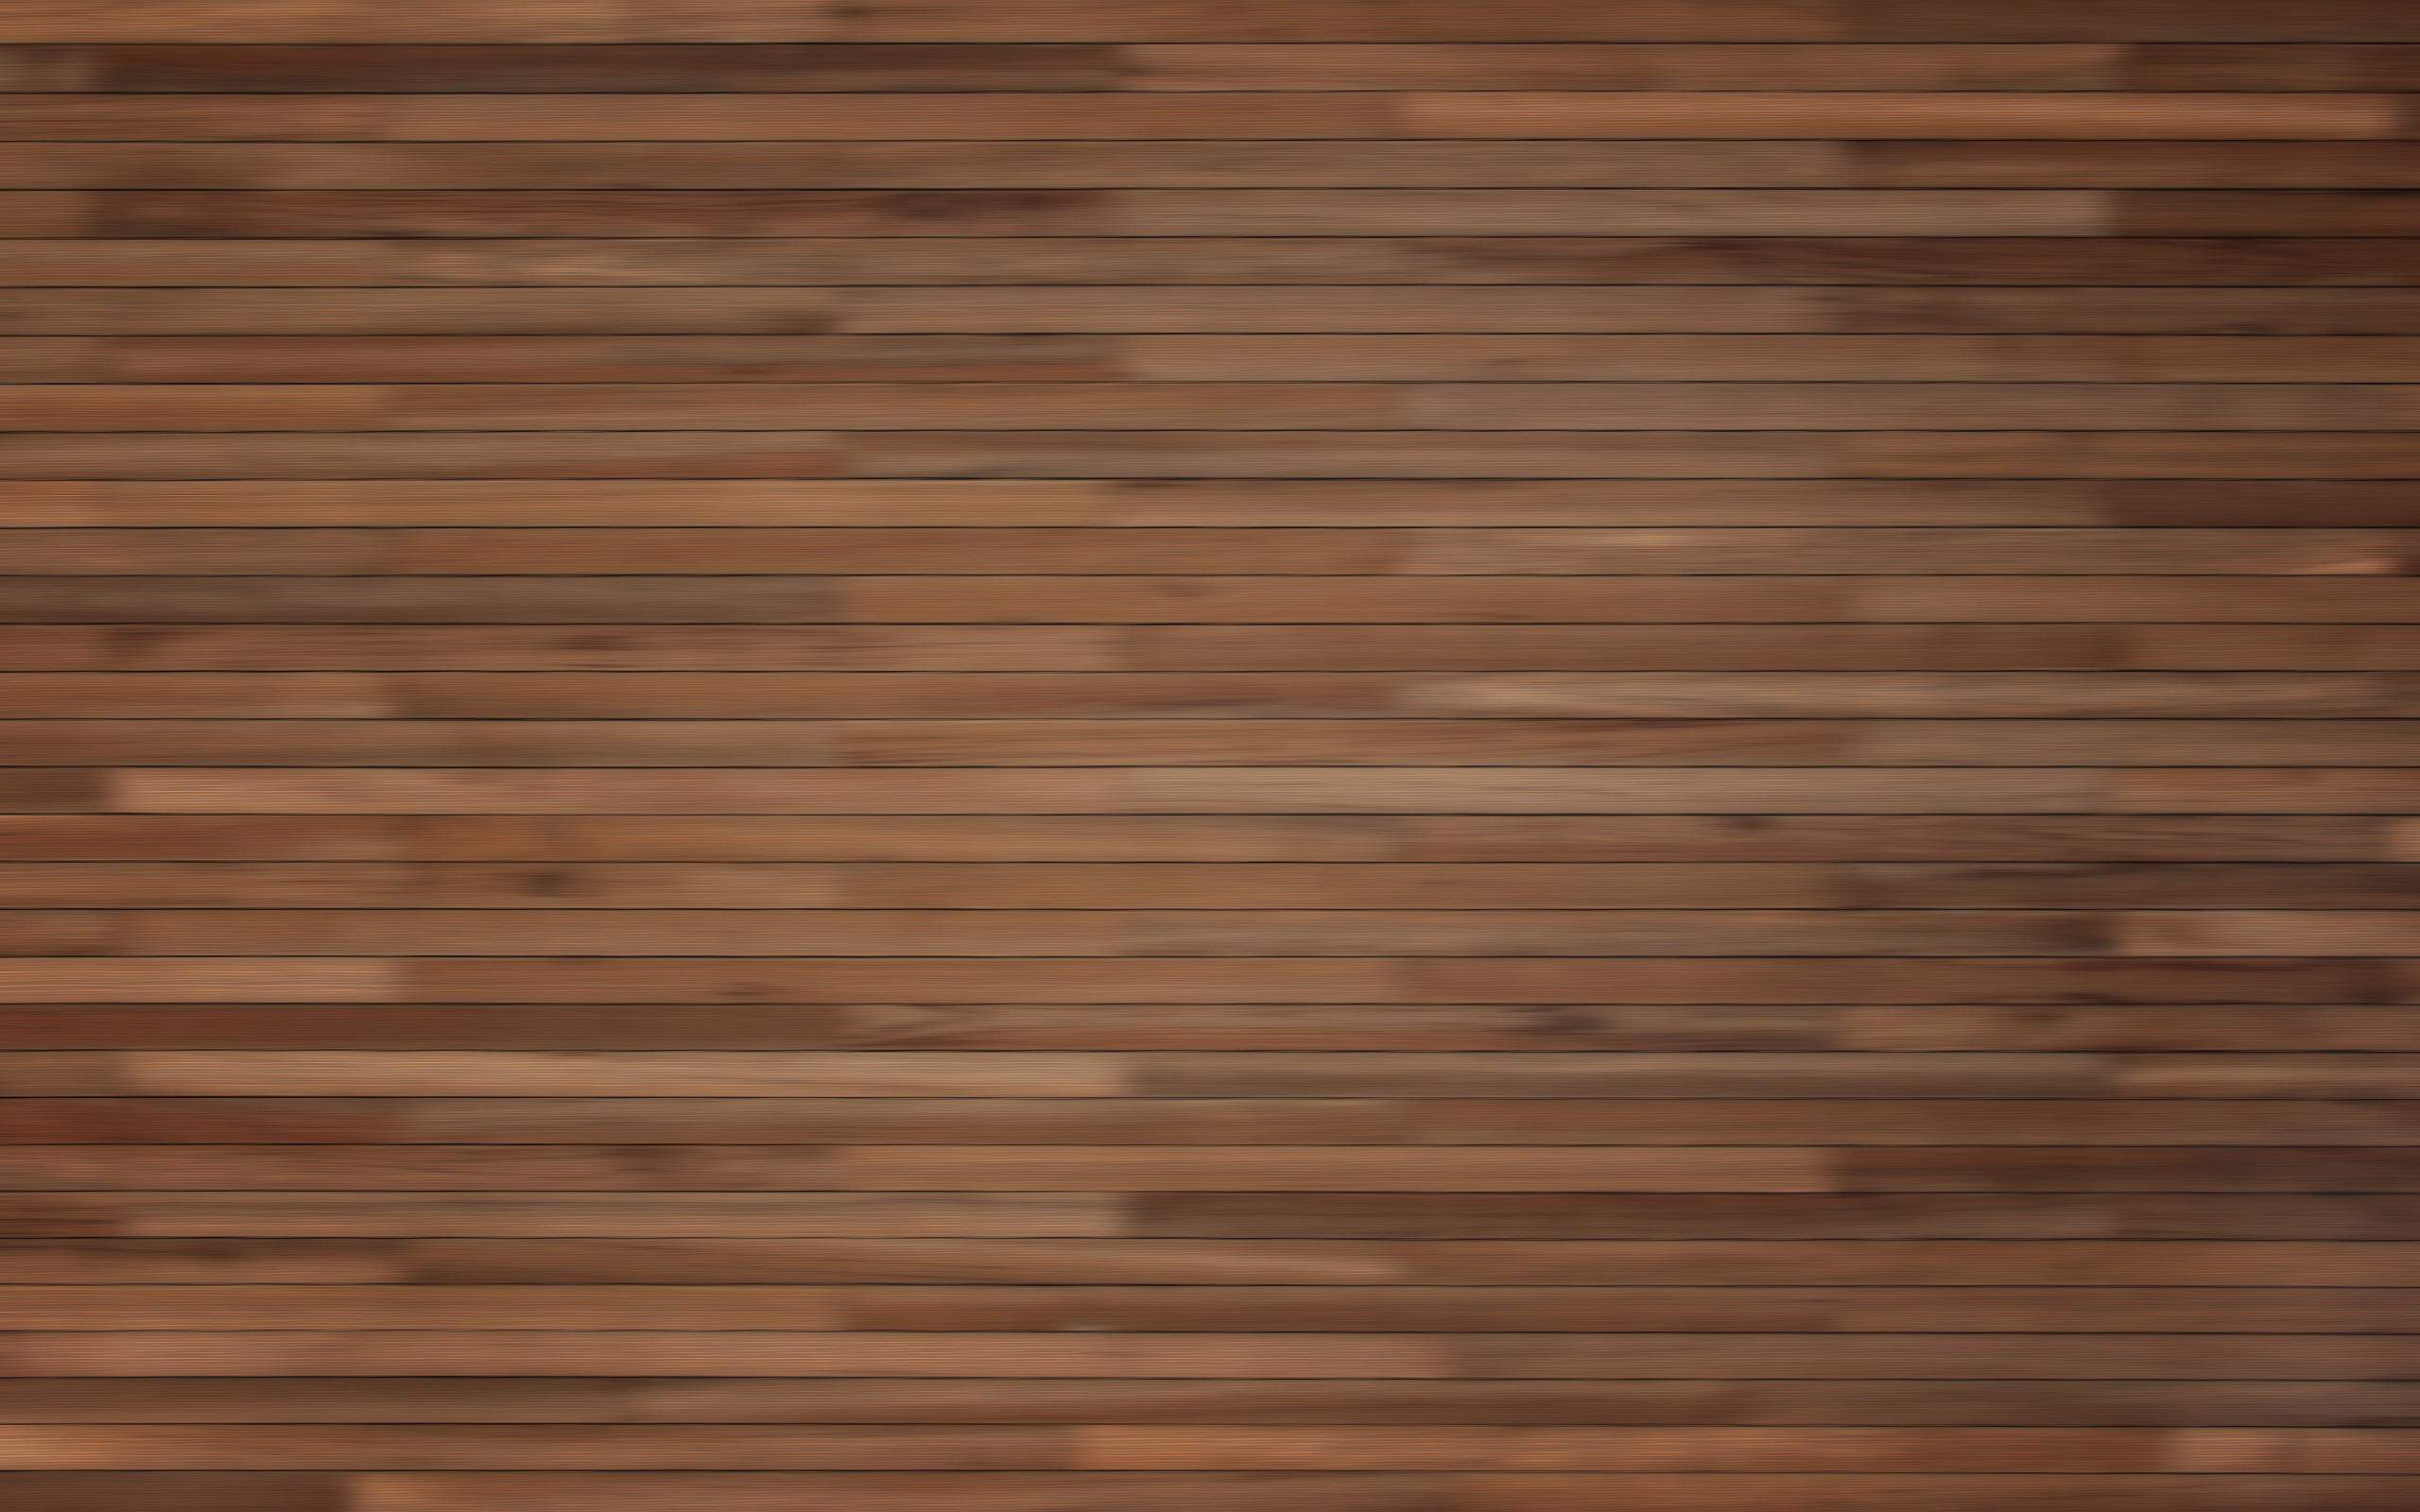 Wooden Textures for Designers (27)